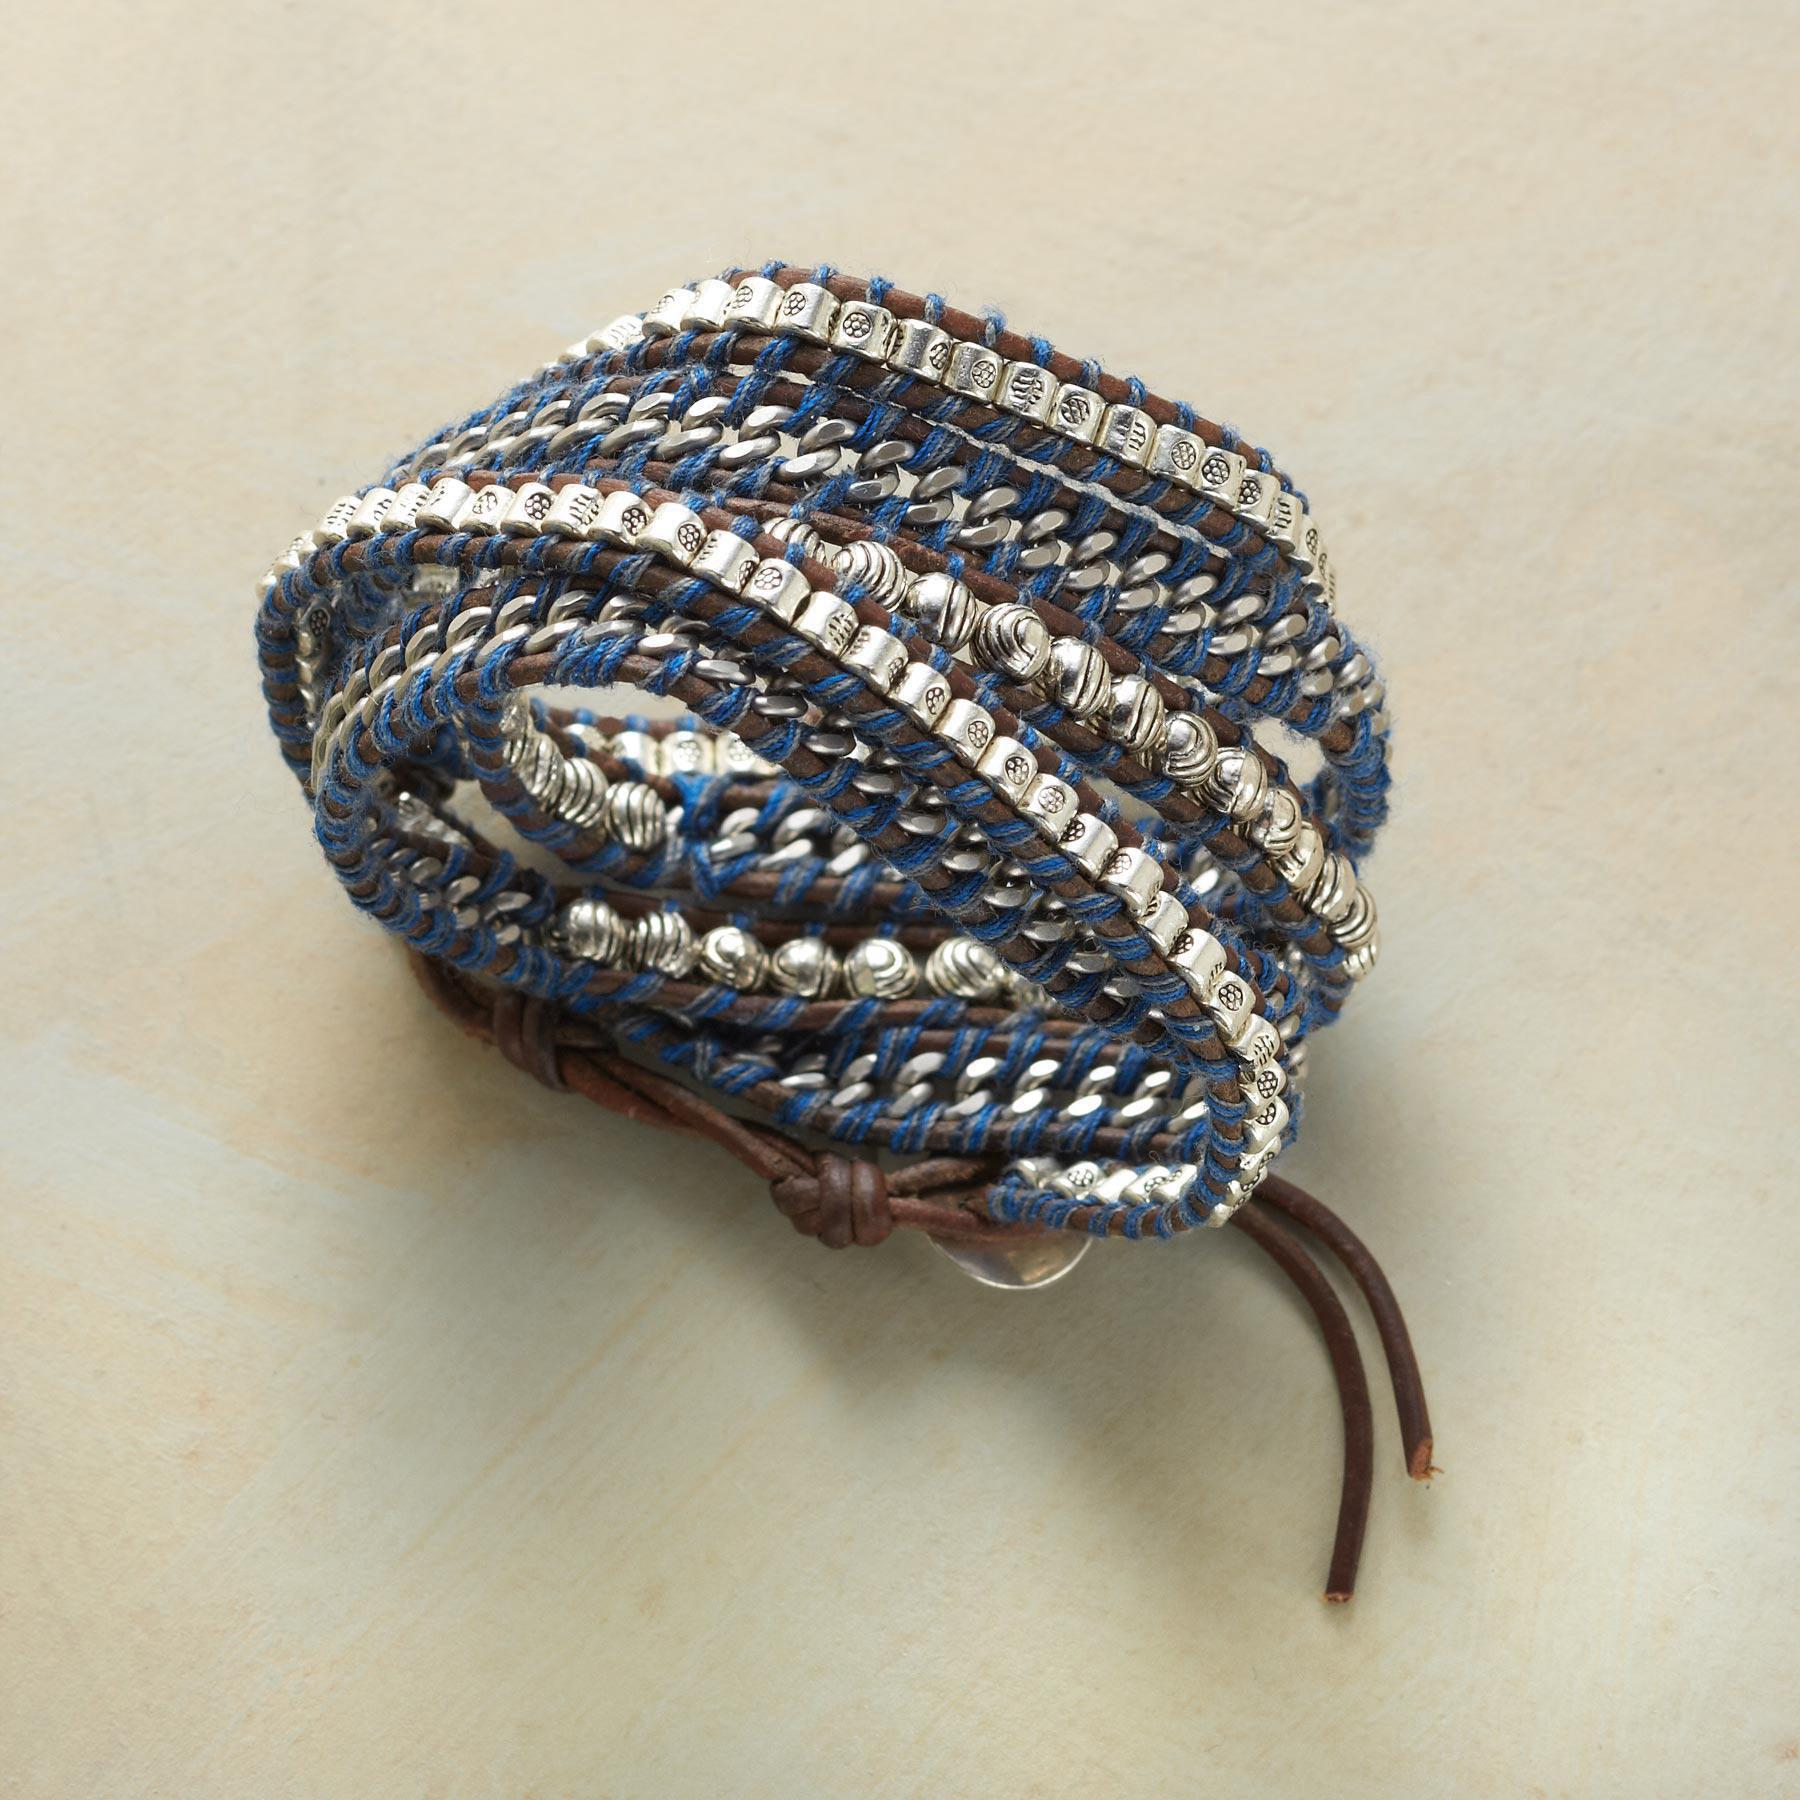 Sky Bridge 5 Wrap Bracelet